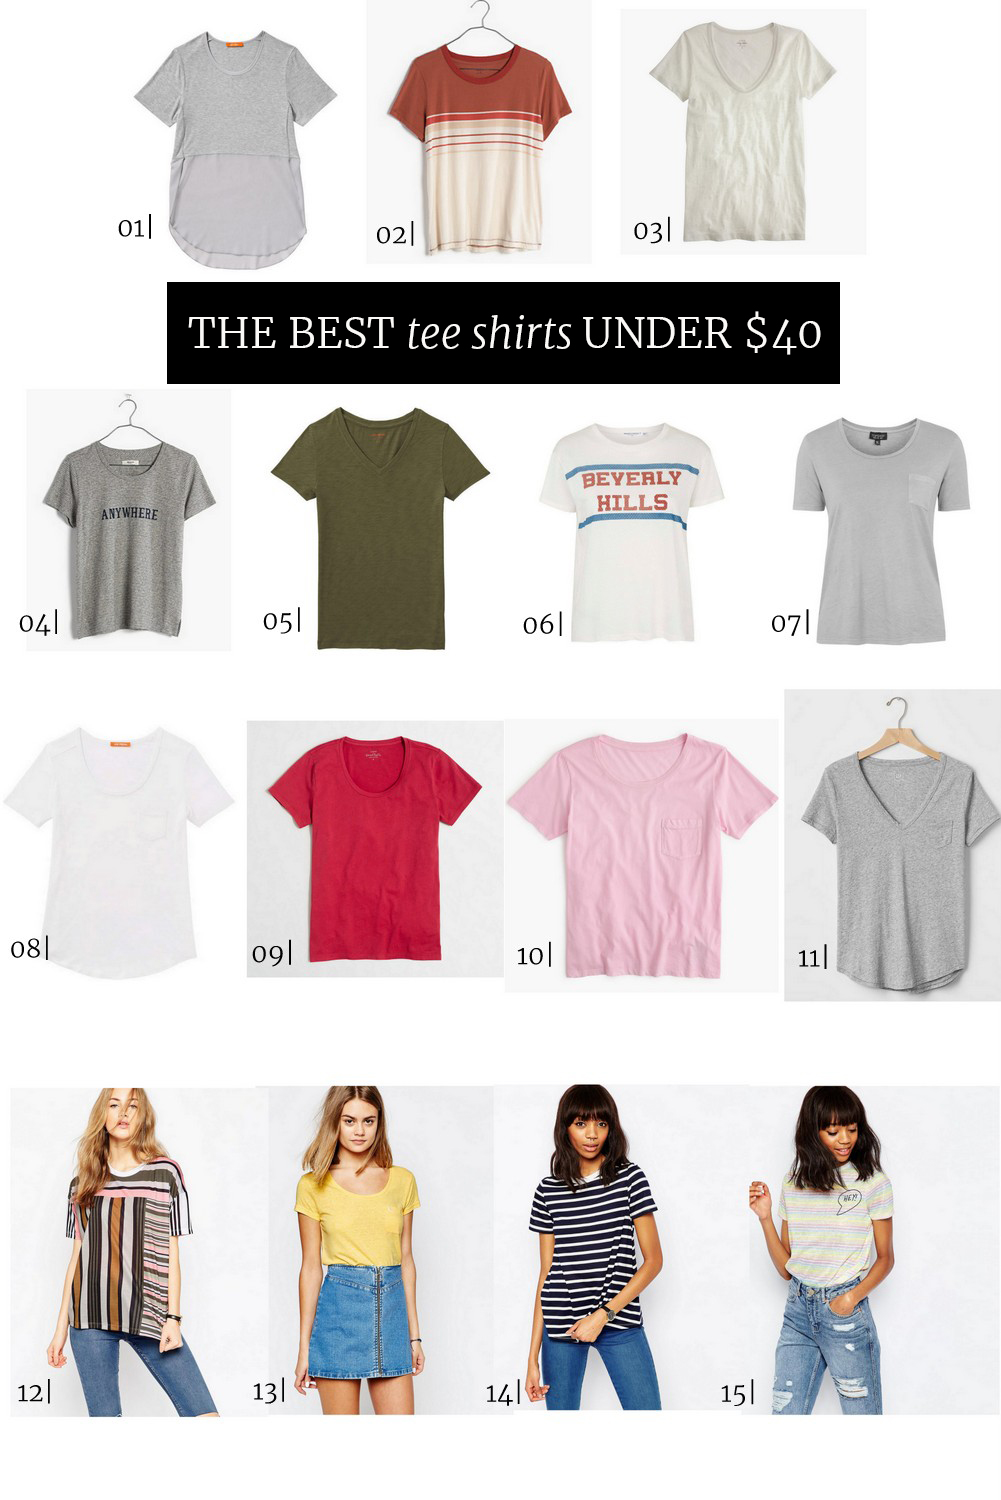 THE-BEST-TEE-SHIRTS-UNDER-$40